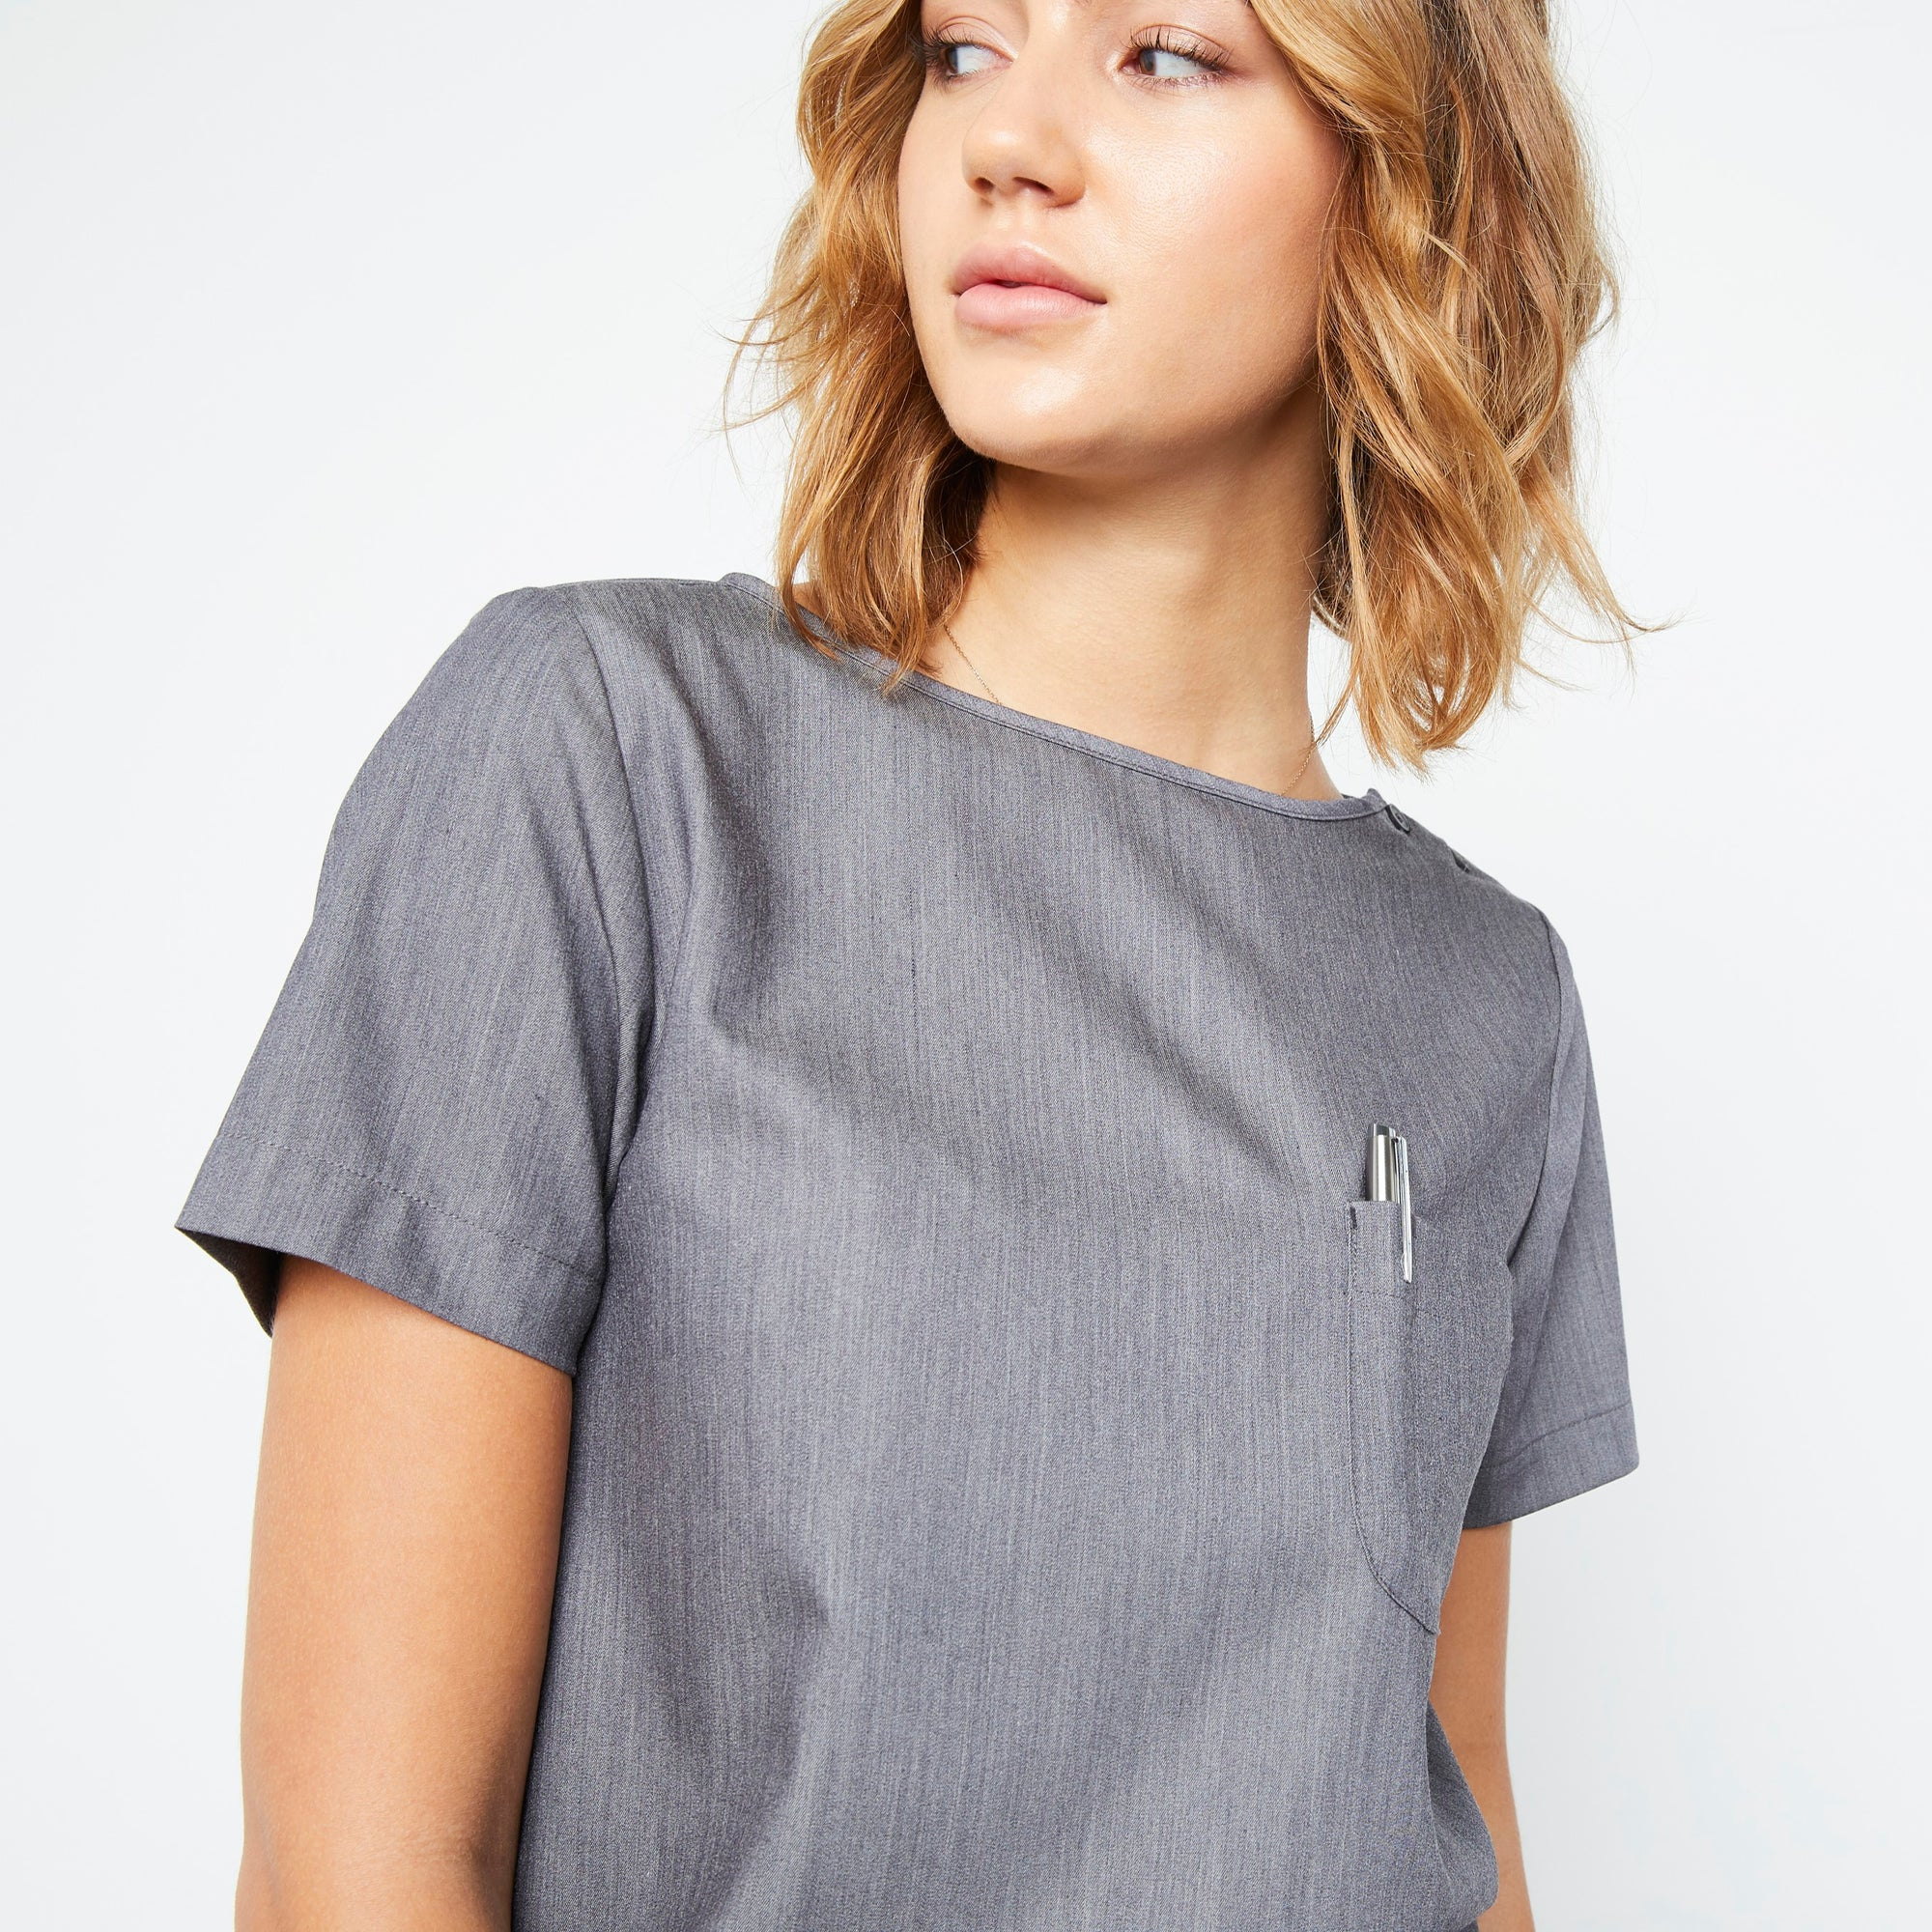 Harley Top | Fabled makes luxe, designer scrub fashions, cute dental scrubs, and cute vet scrubs.